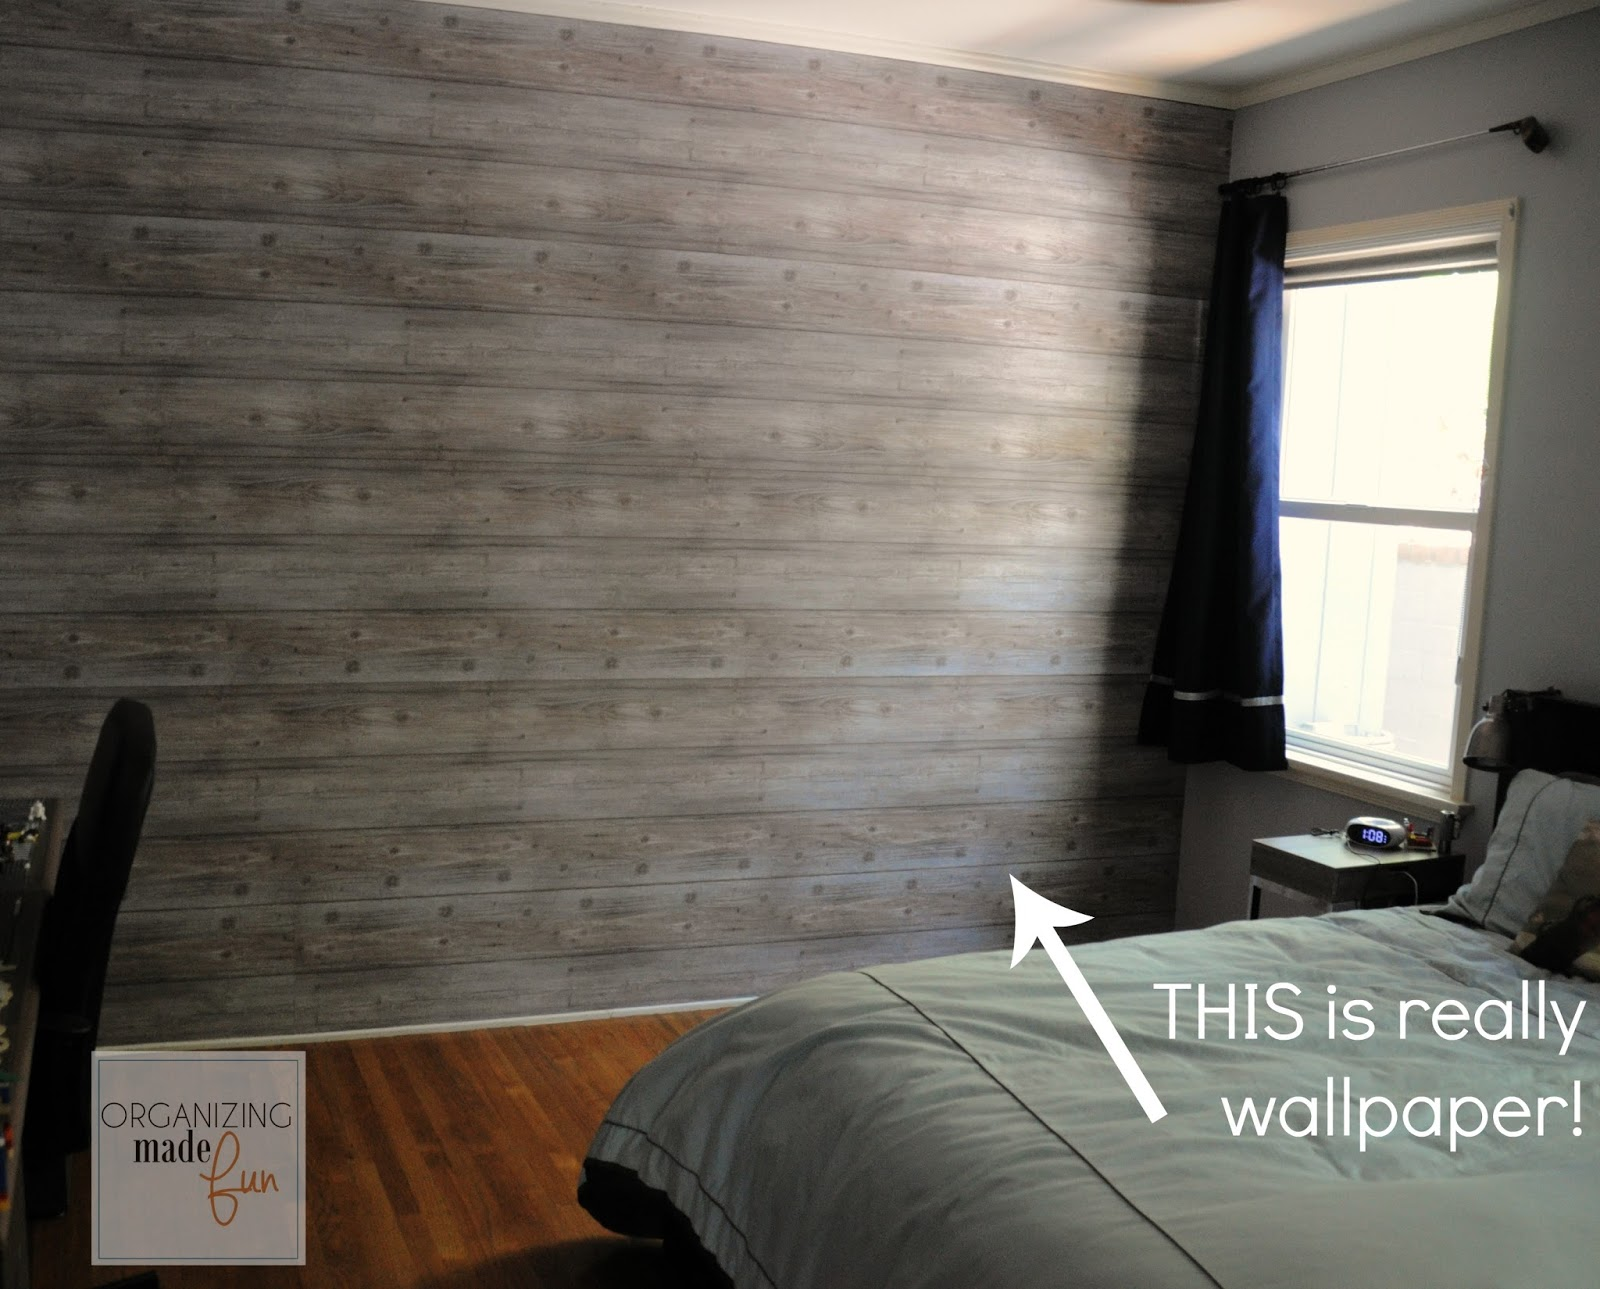 Wallpaper That Looks Like Wood Panelling At Oq57